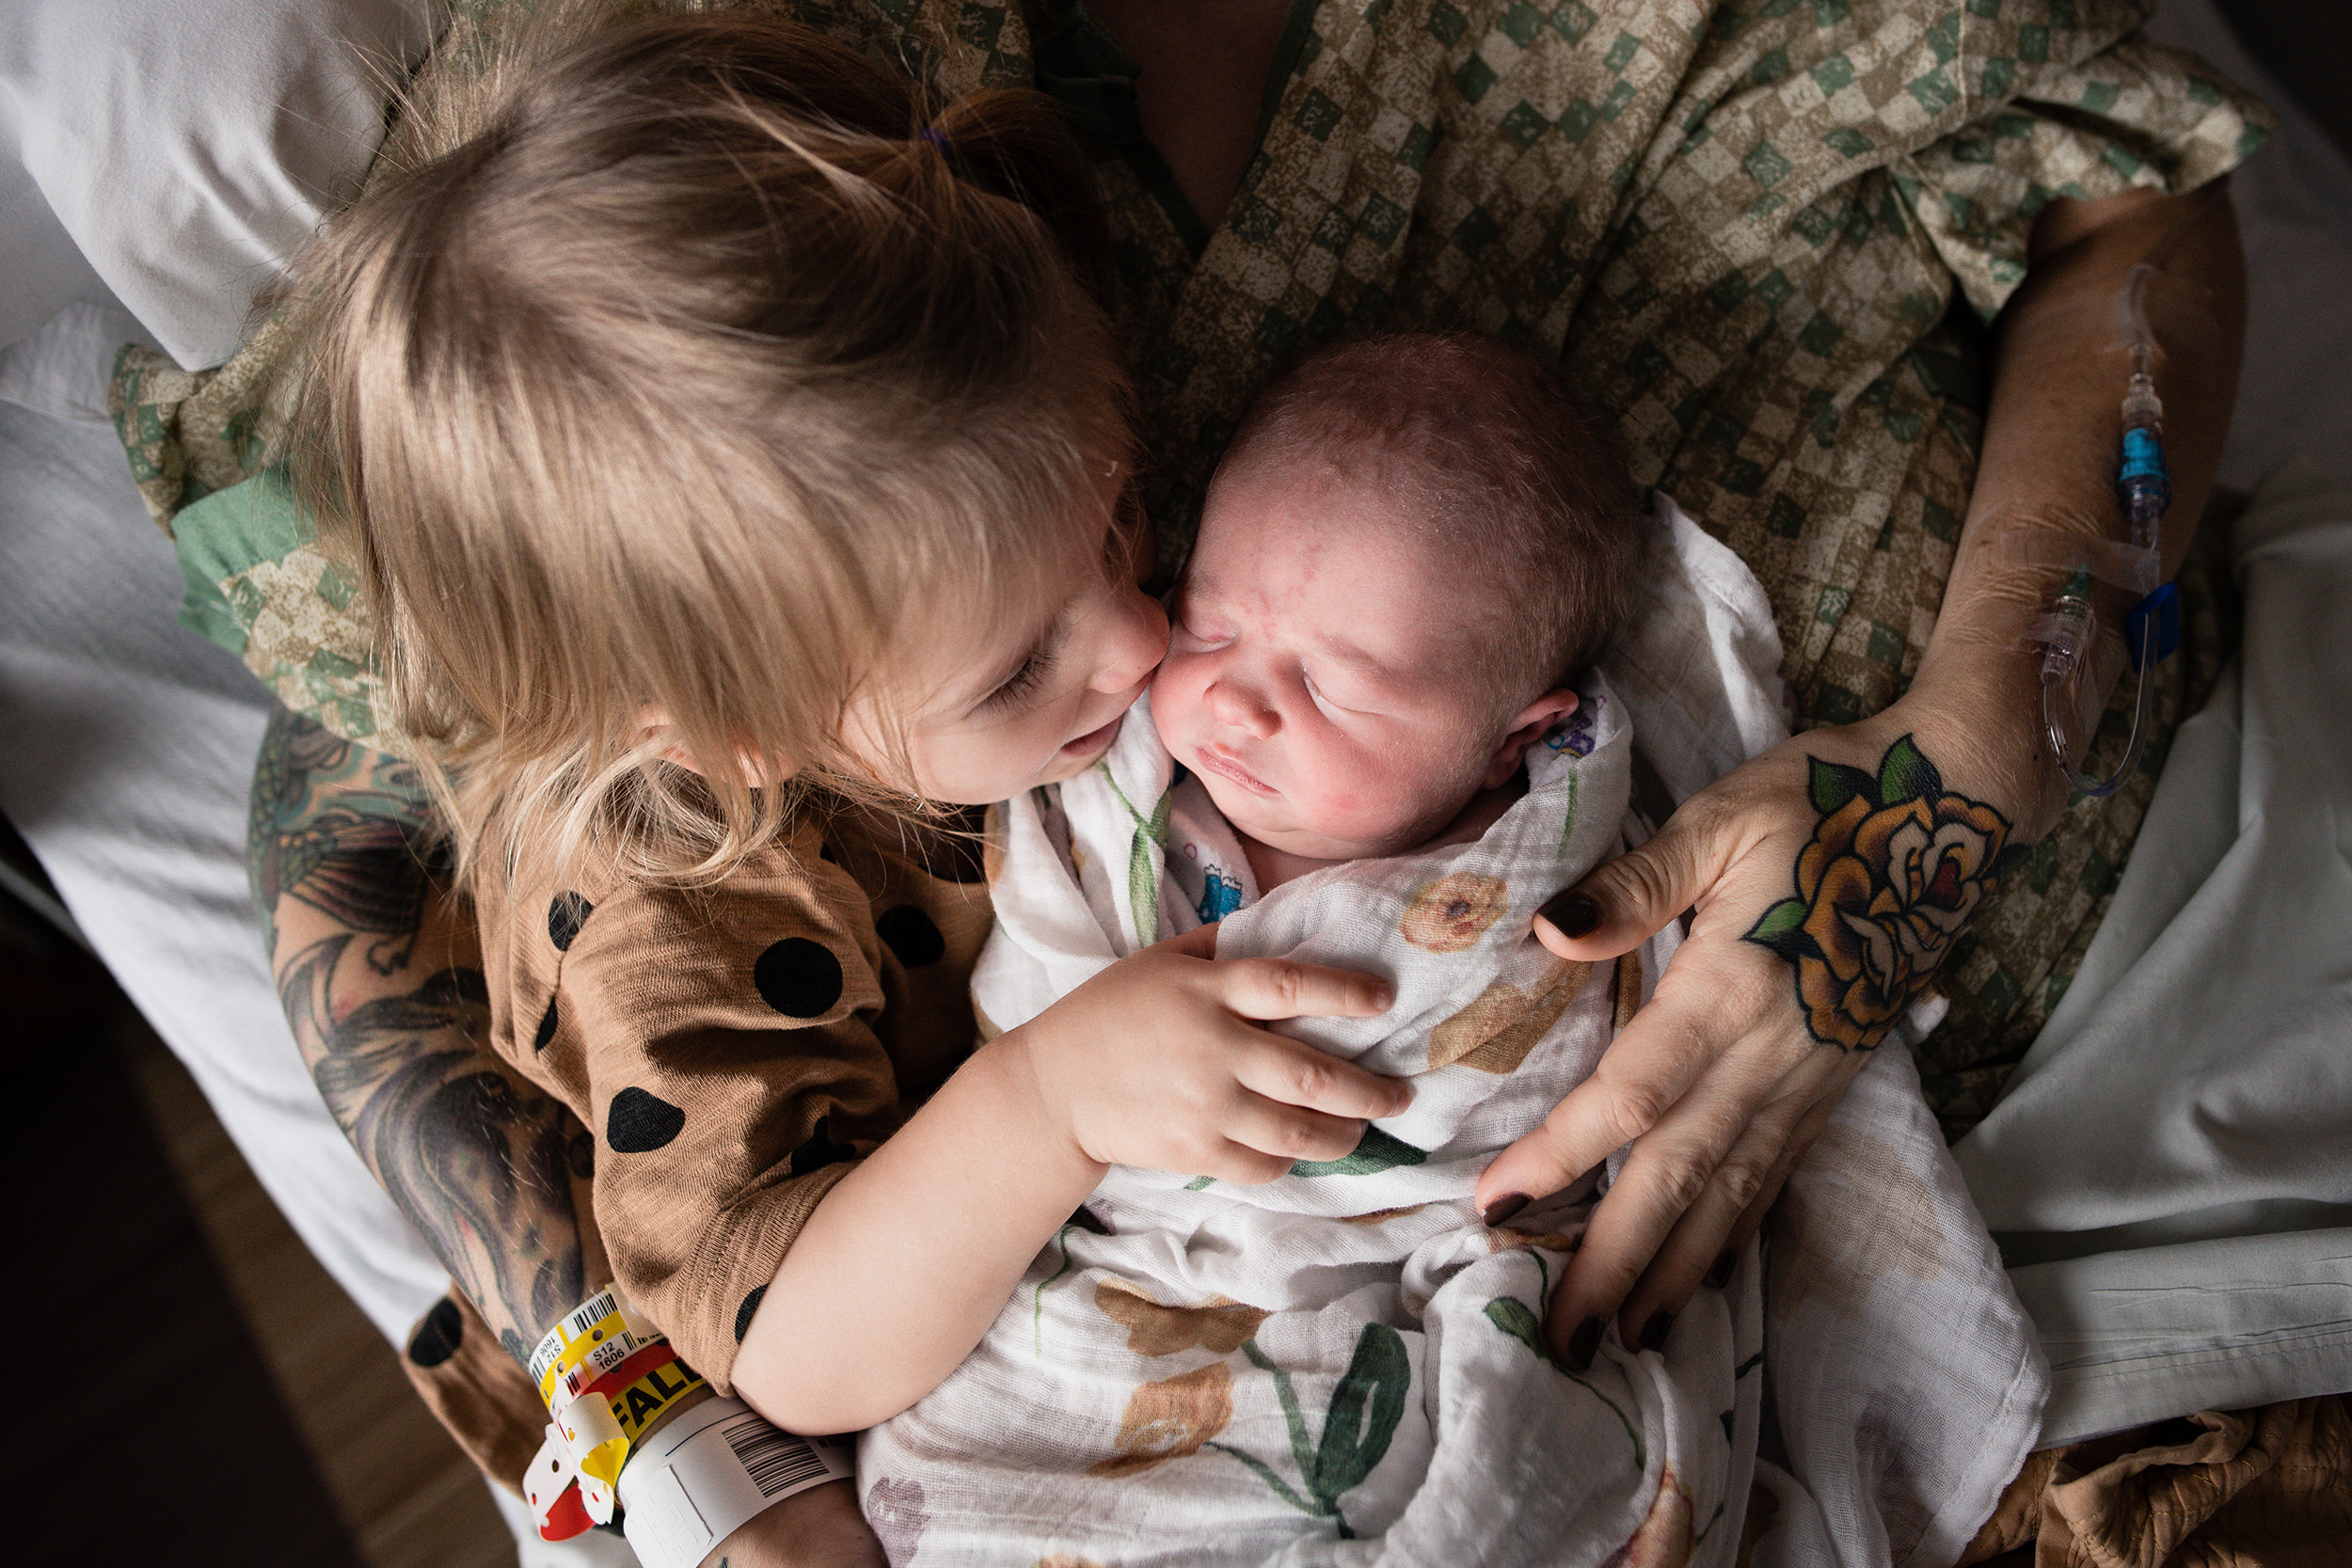 23-big-sister-kisses-newborn-baby-sister-hospital-photography-session.jpg